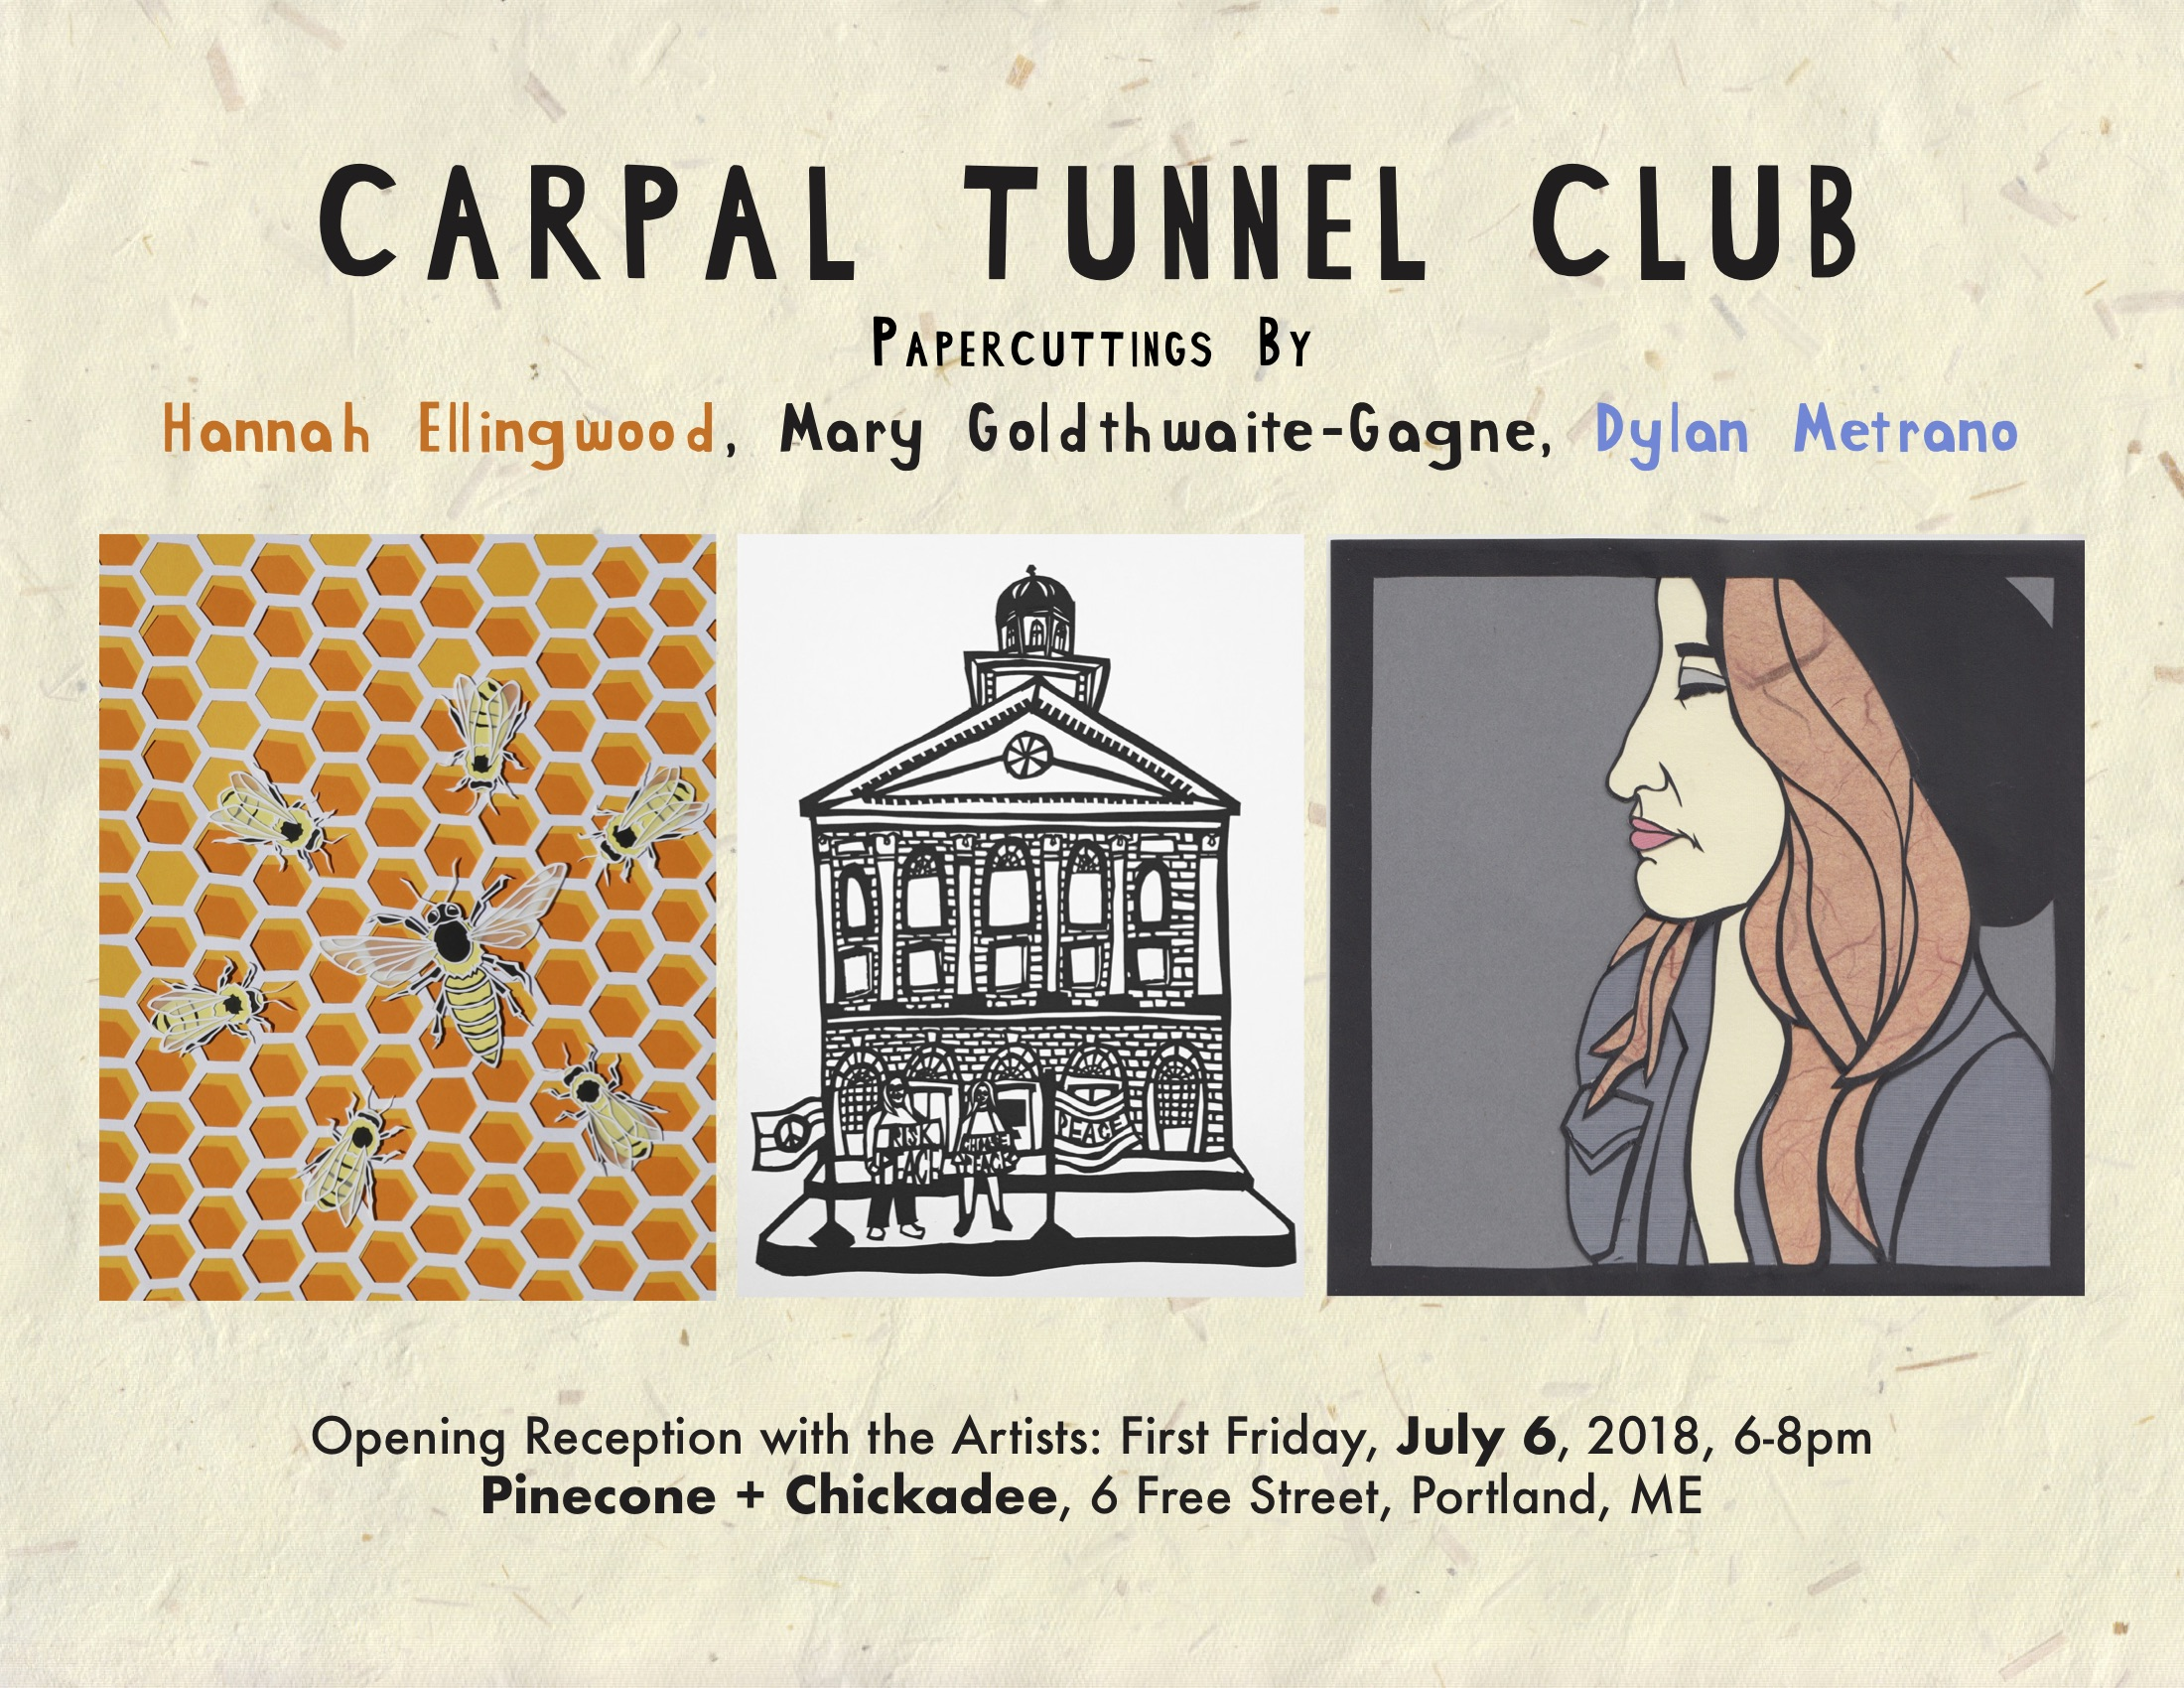 Carpal Tunnel Club